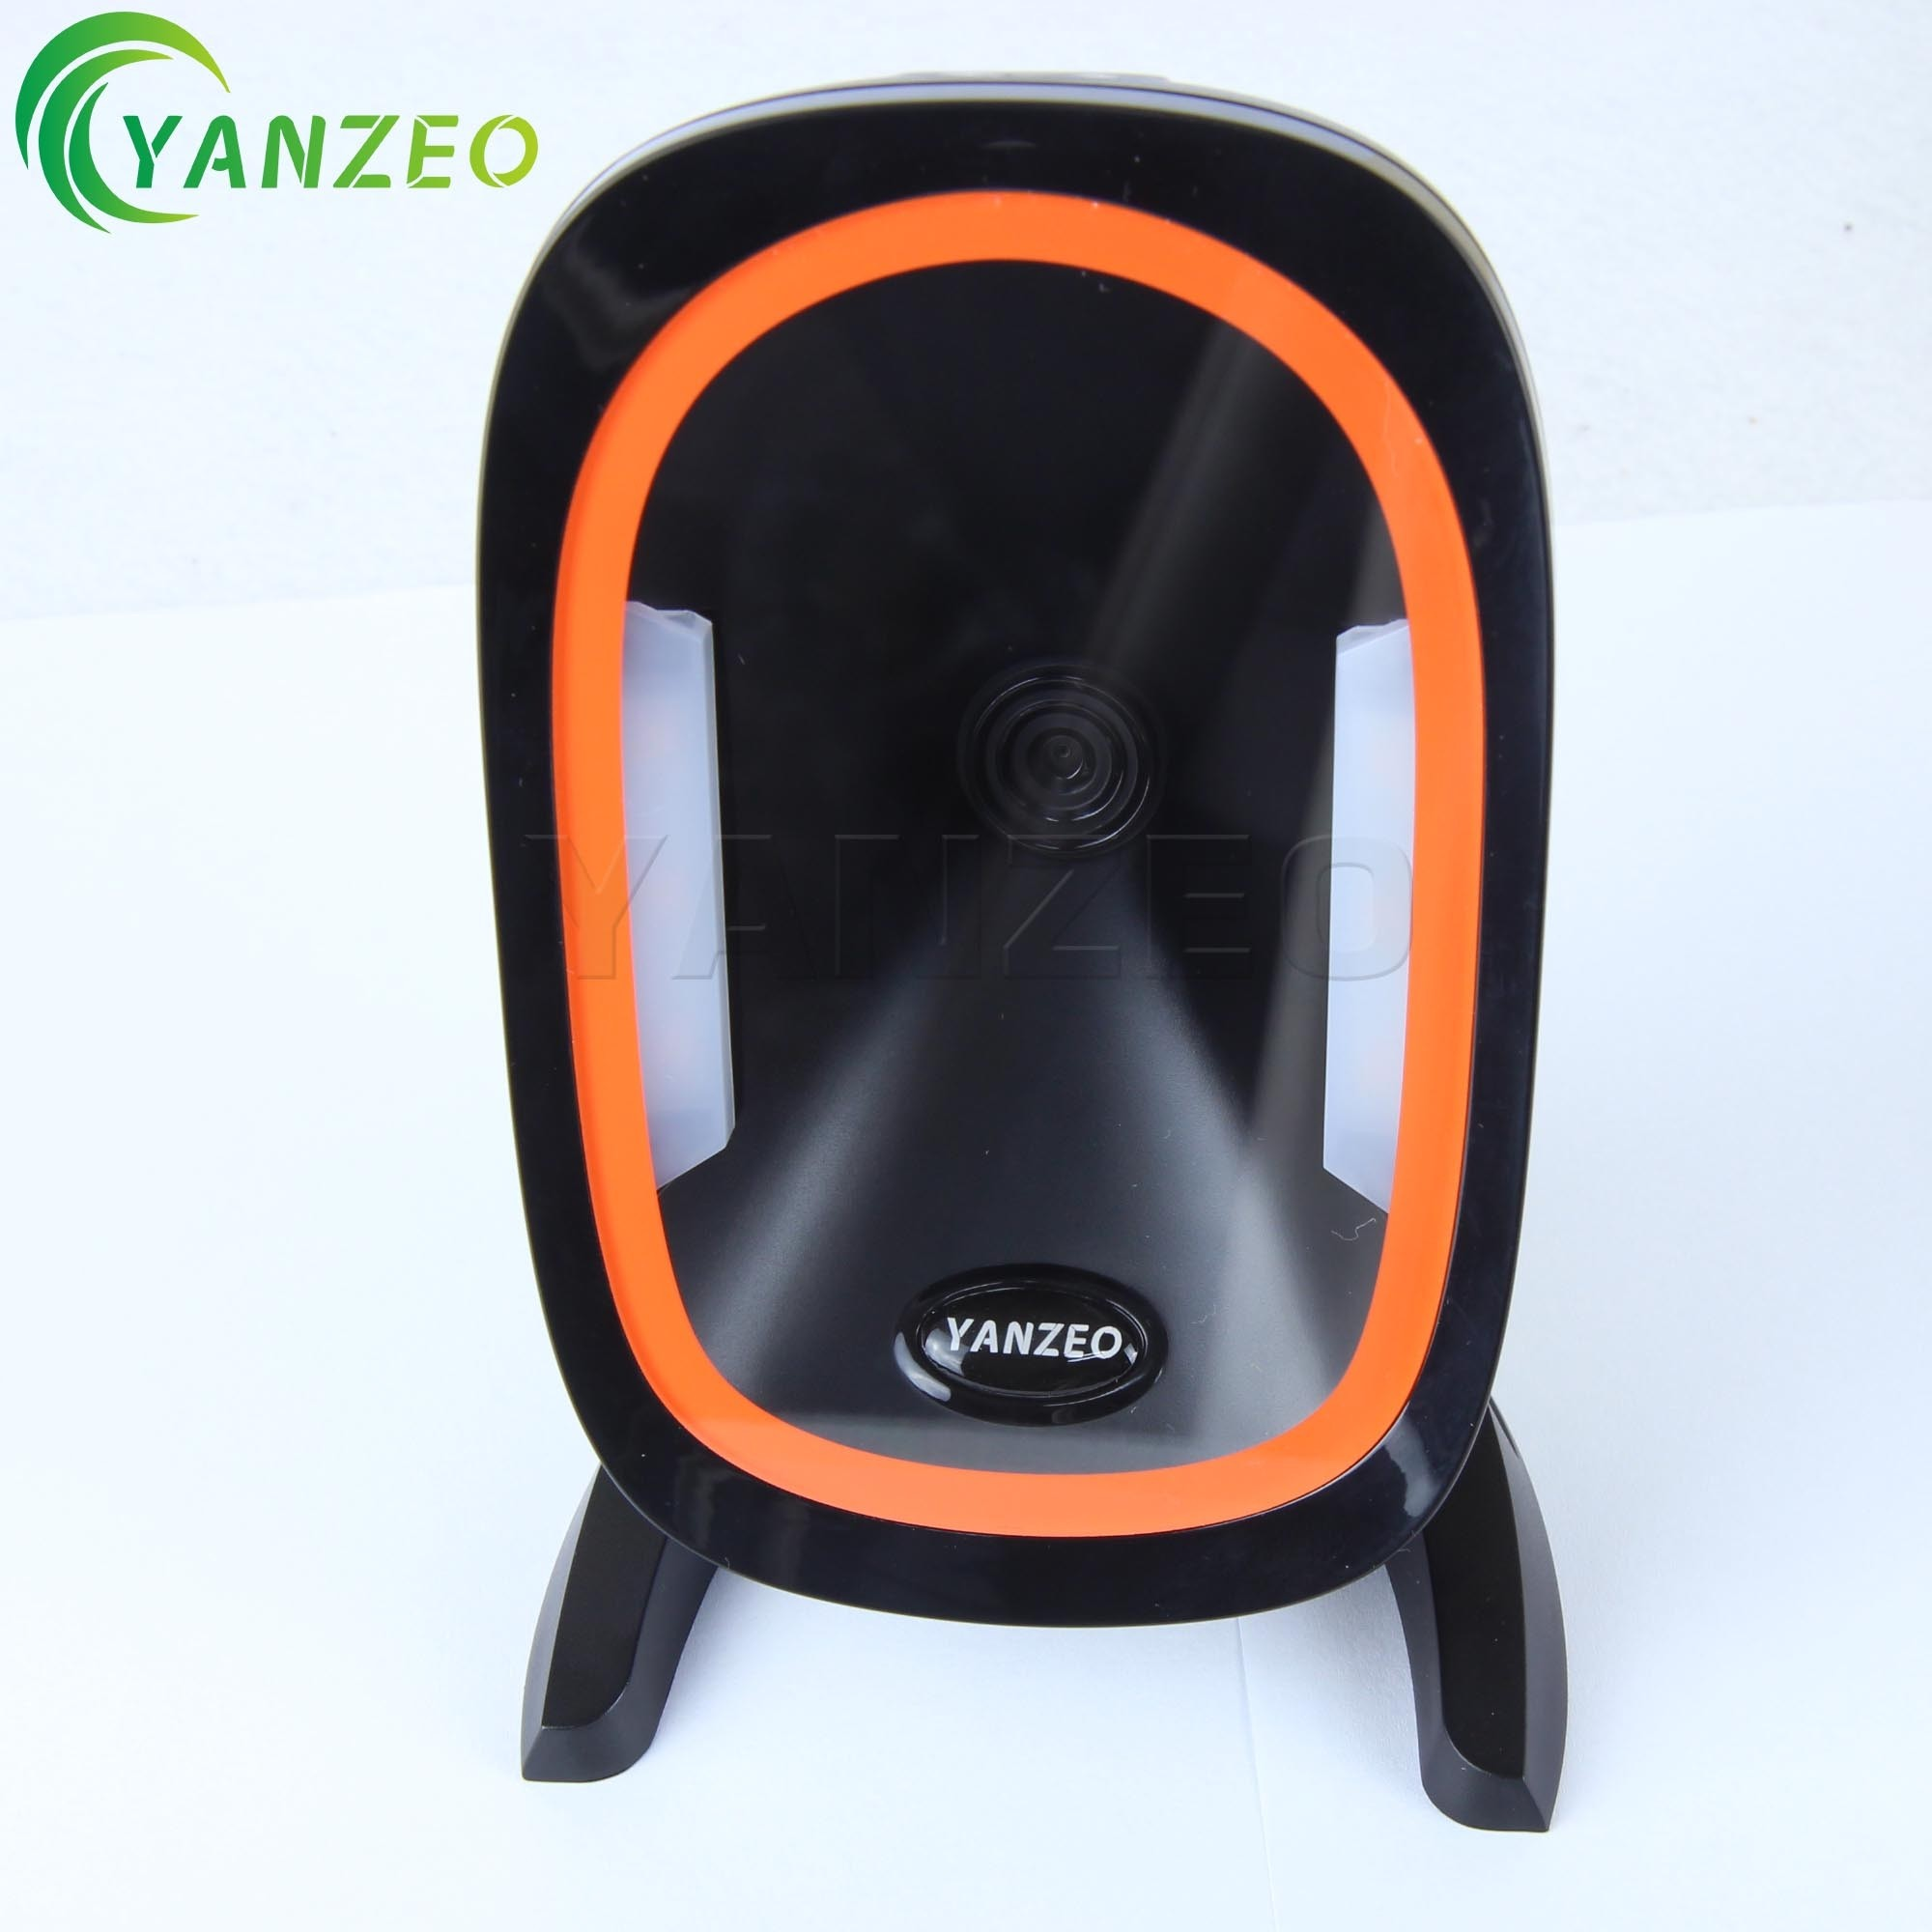 Yanzeo YZ888 Omni-Directional High perfermance Desktop USB 1D/2D BarCode Scanner for Pos System Supermarket Warranty 12 Months